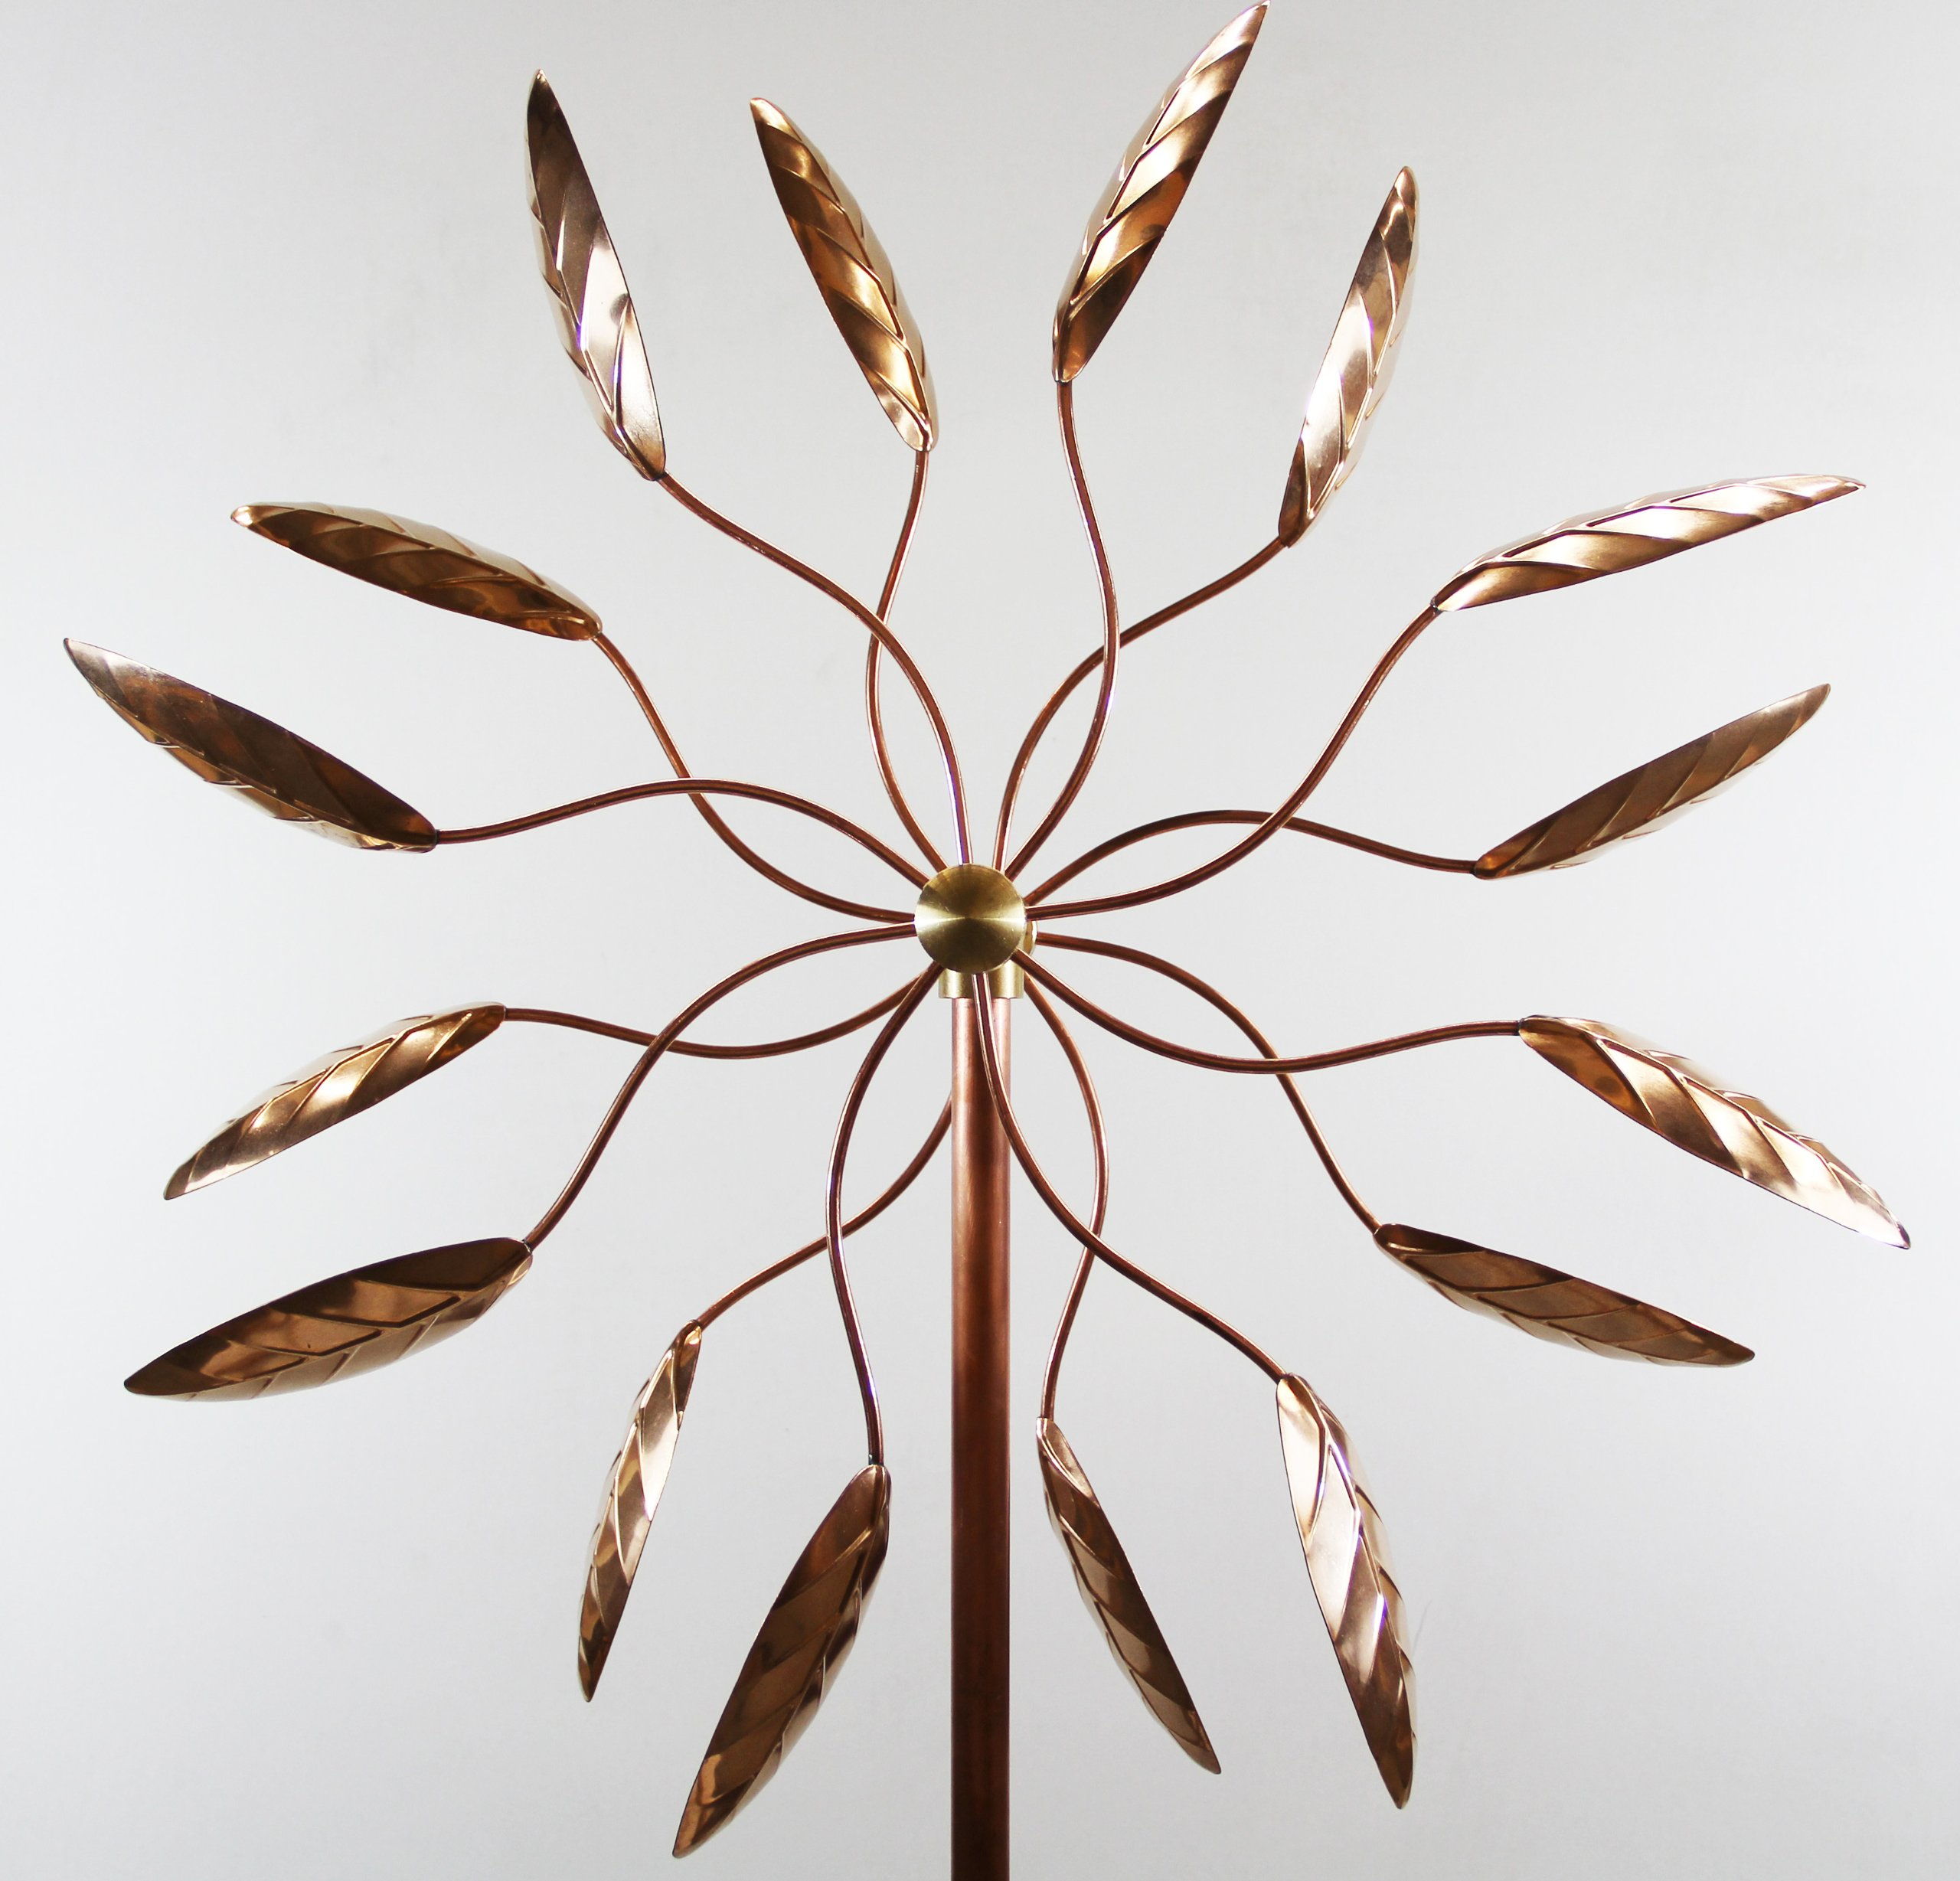 Stanwood Wind Sculpture Kinetic Copper Wind Sculpture, Dual Spinner Spinning Ficus Leaves by Stanwood Wind Sculpture